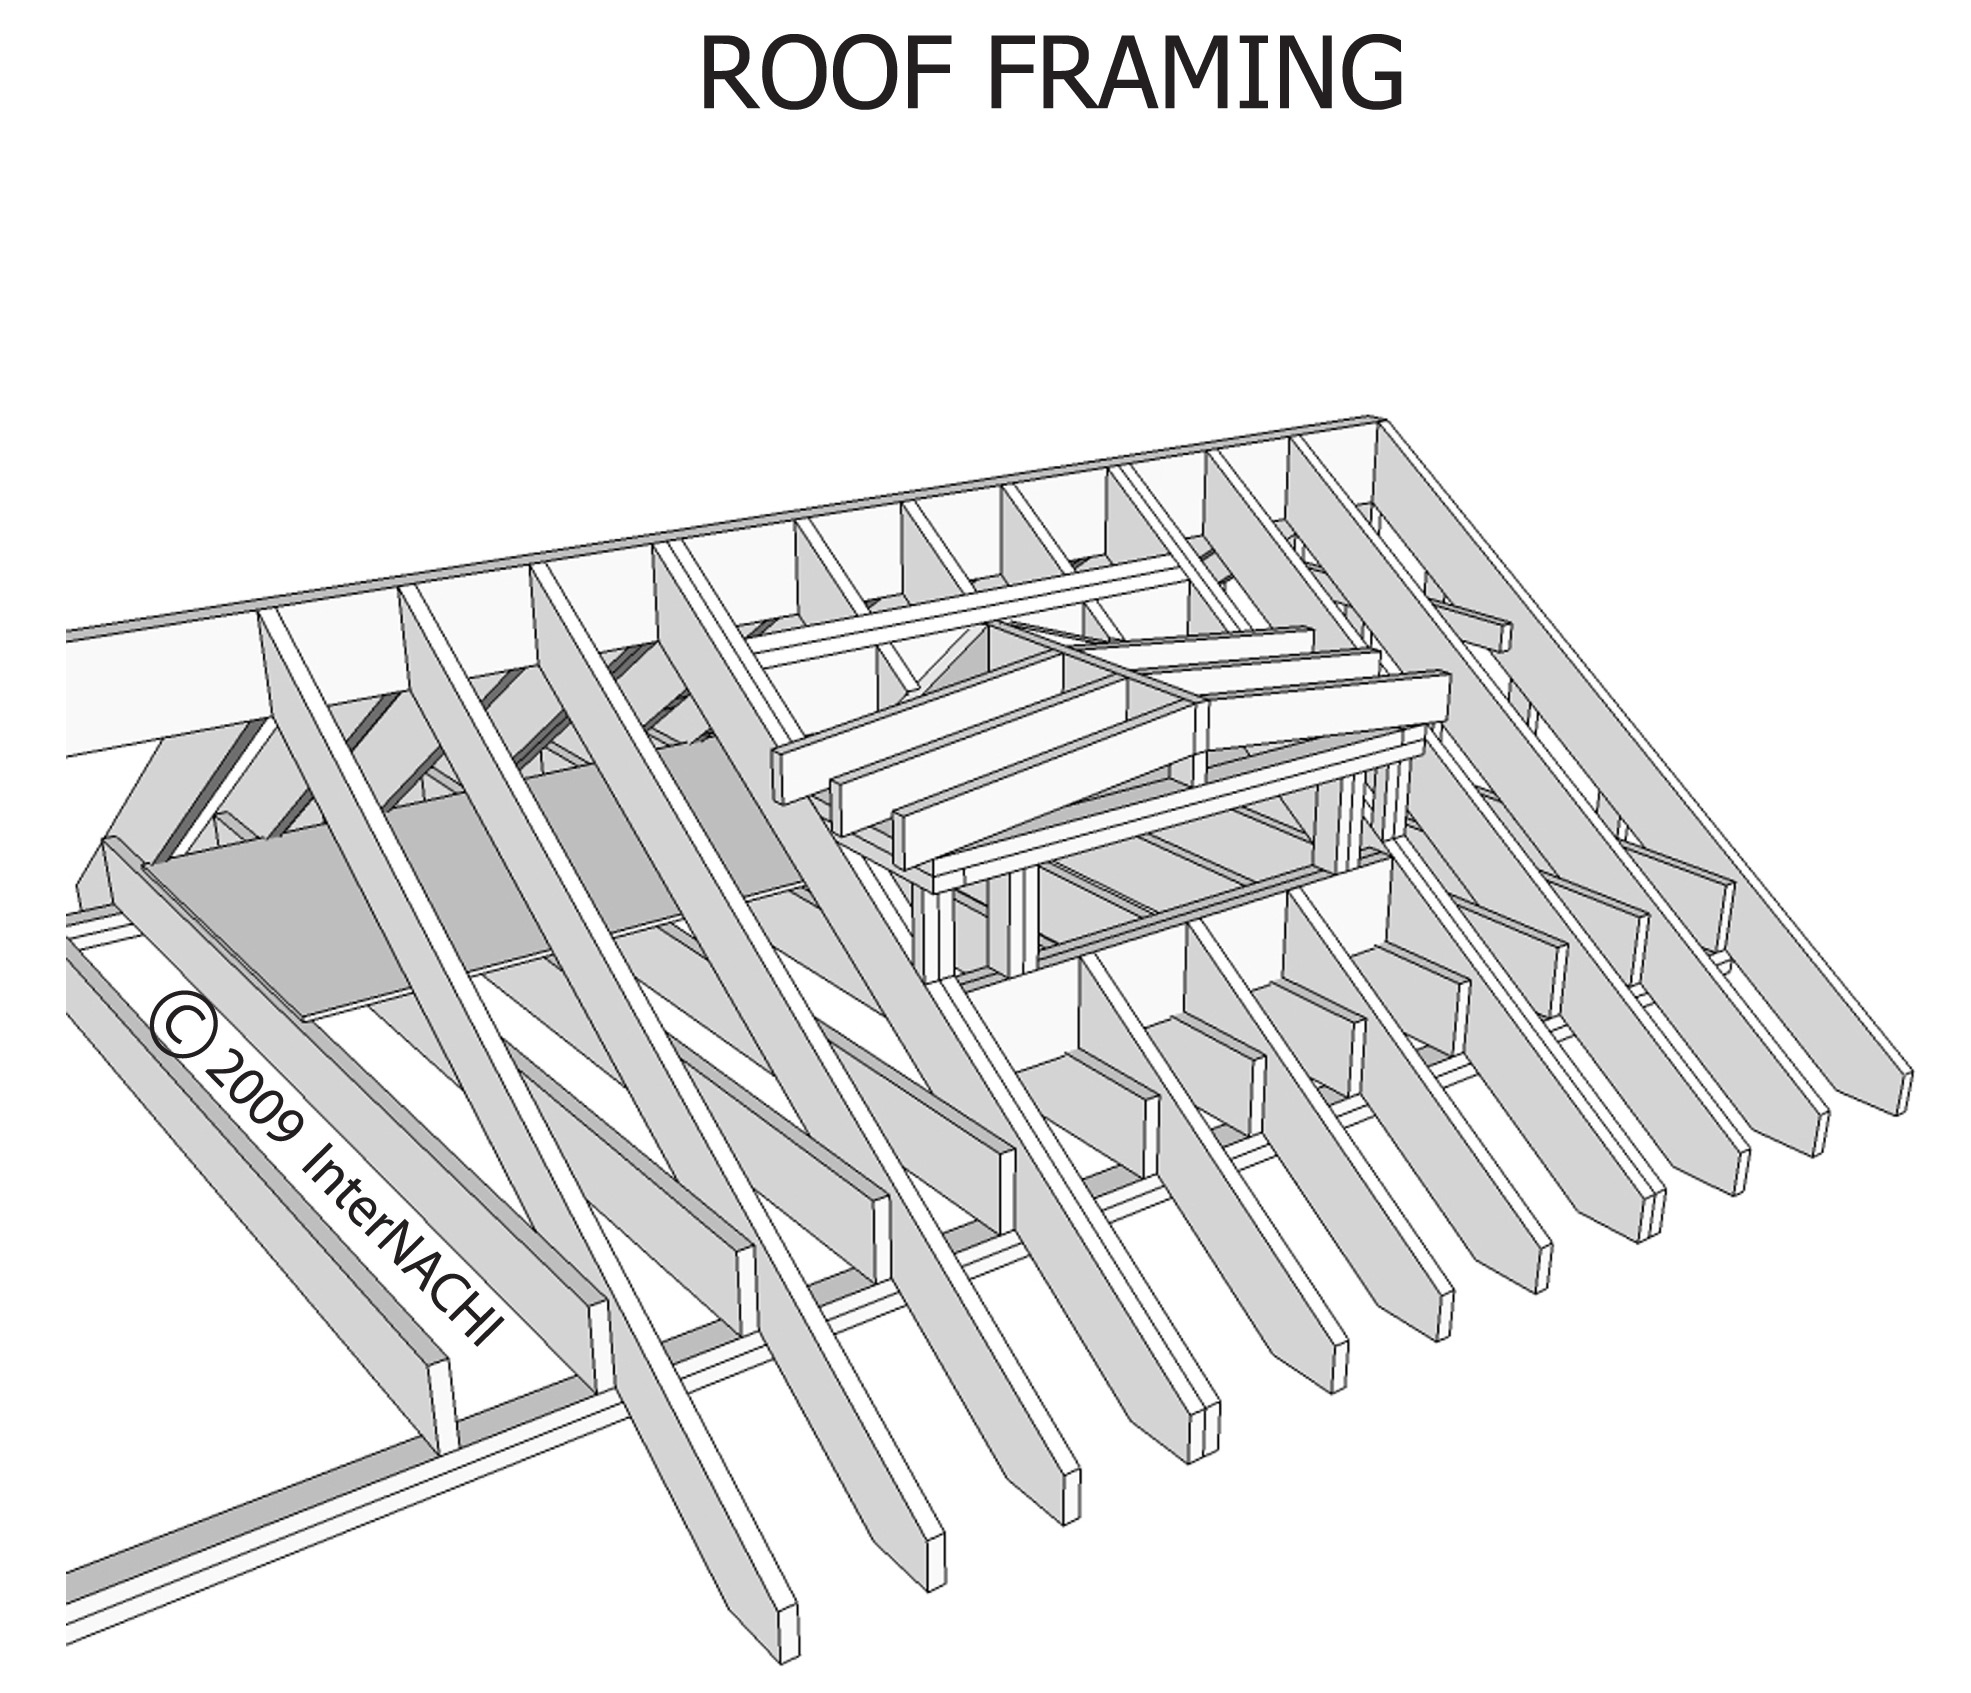 exceptional roof framing Part - 6: exceptional roof framing design inspirations